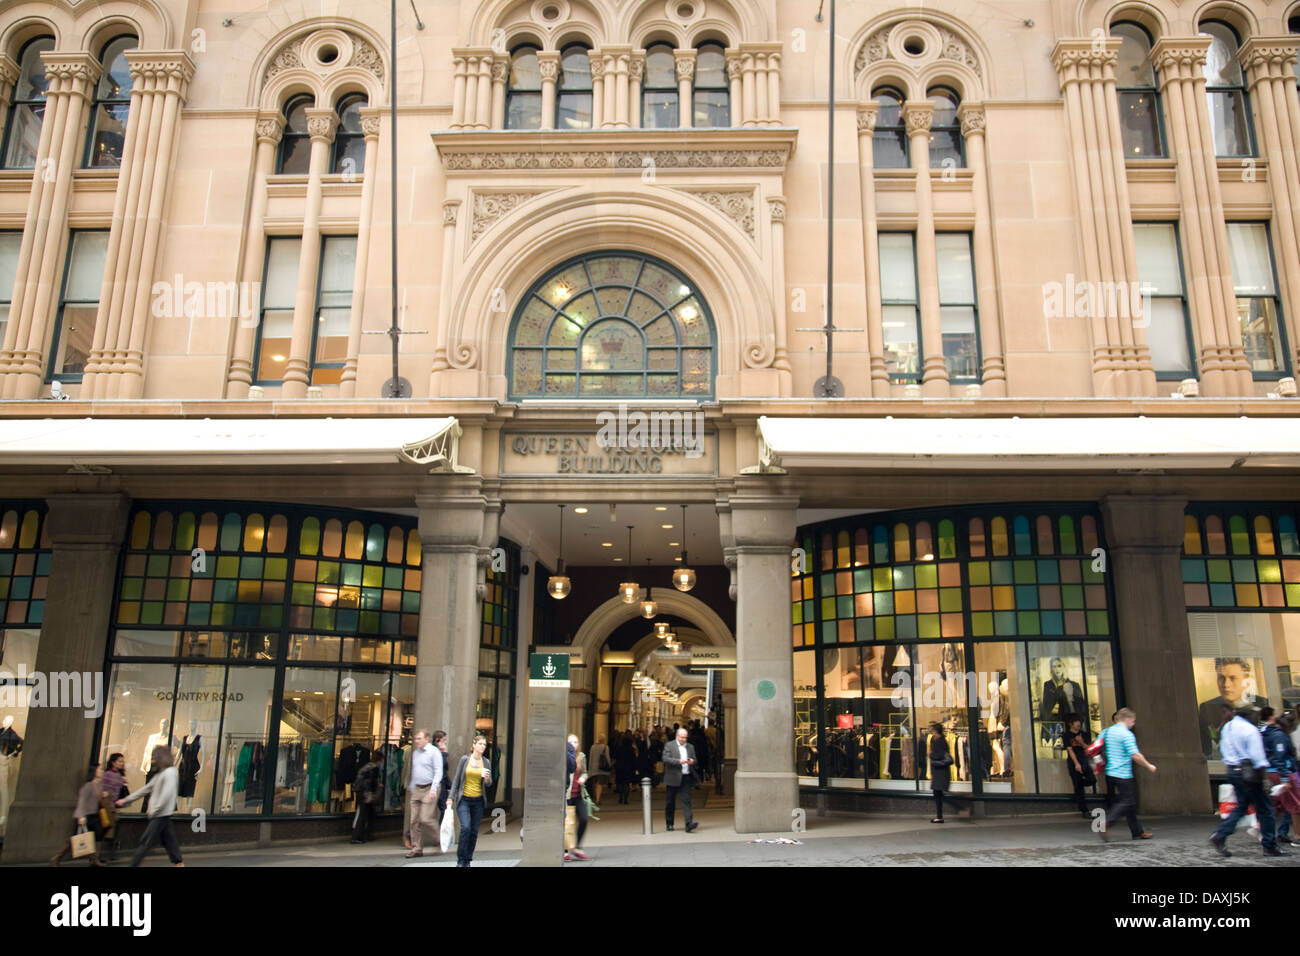 Queen victoria building, a Romanesque Revival building was constructed between 1893 and 1898.here viewed from market - Stock Image